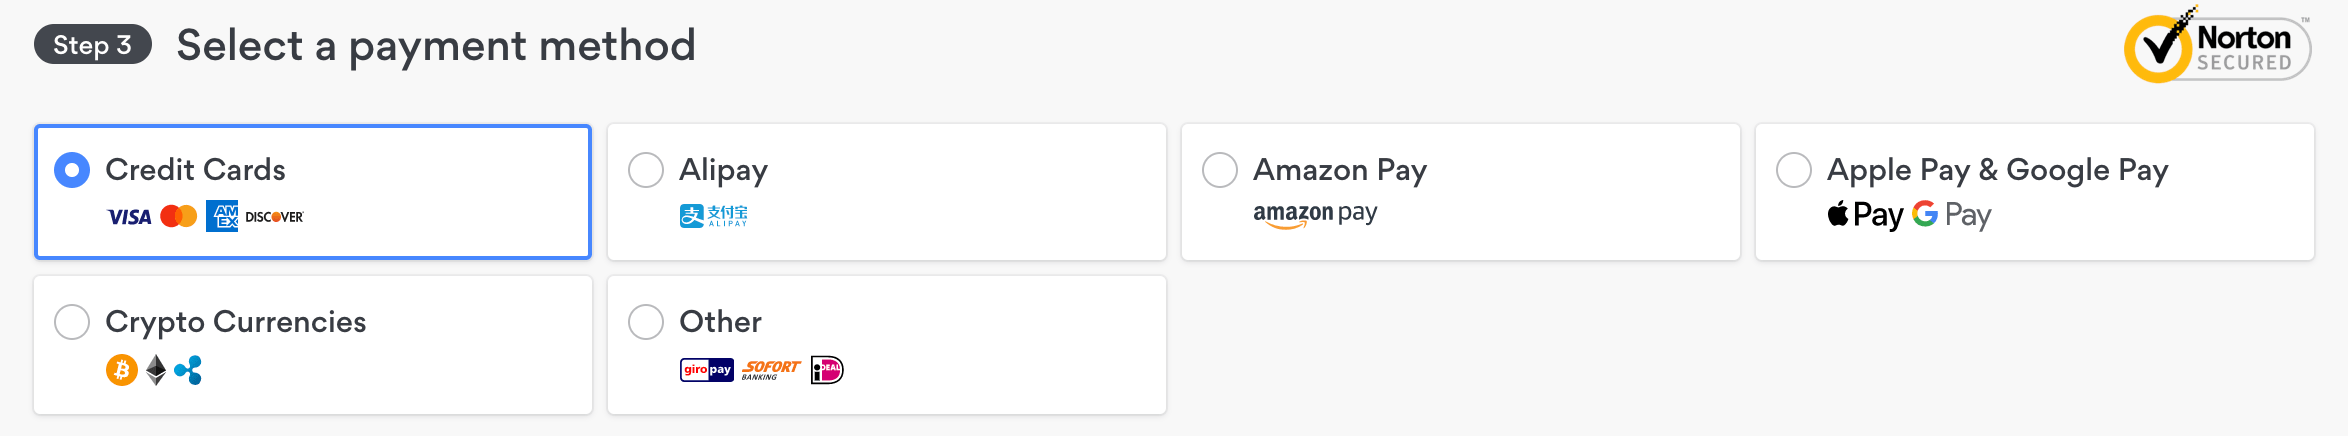 Payment method 2019-06-20 pm 4.23.59